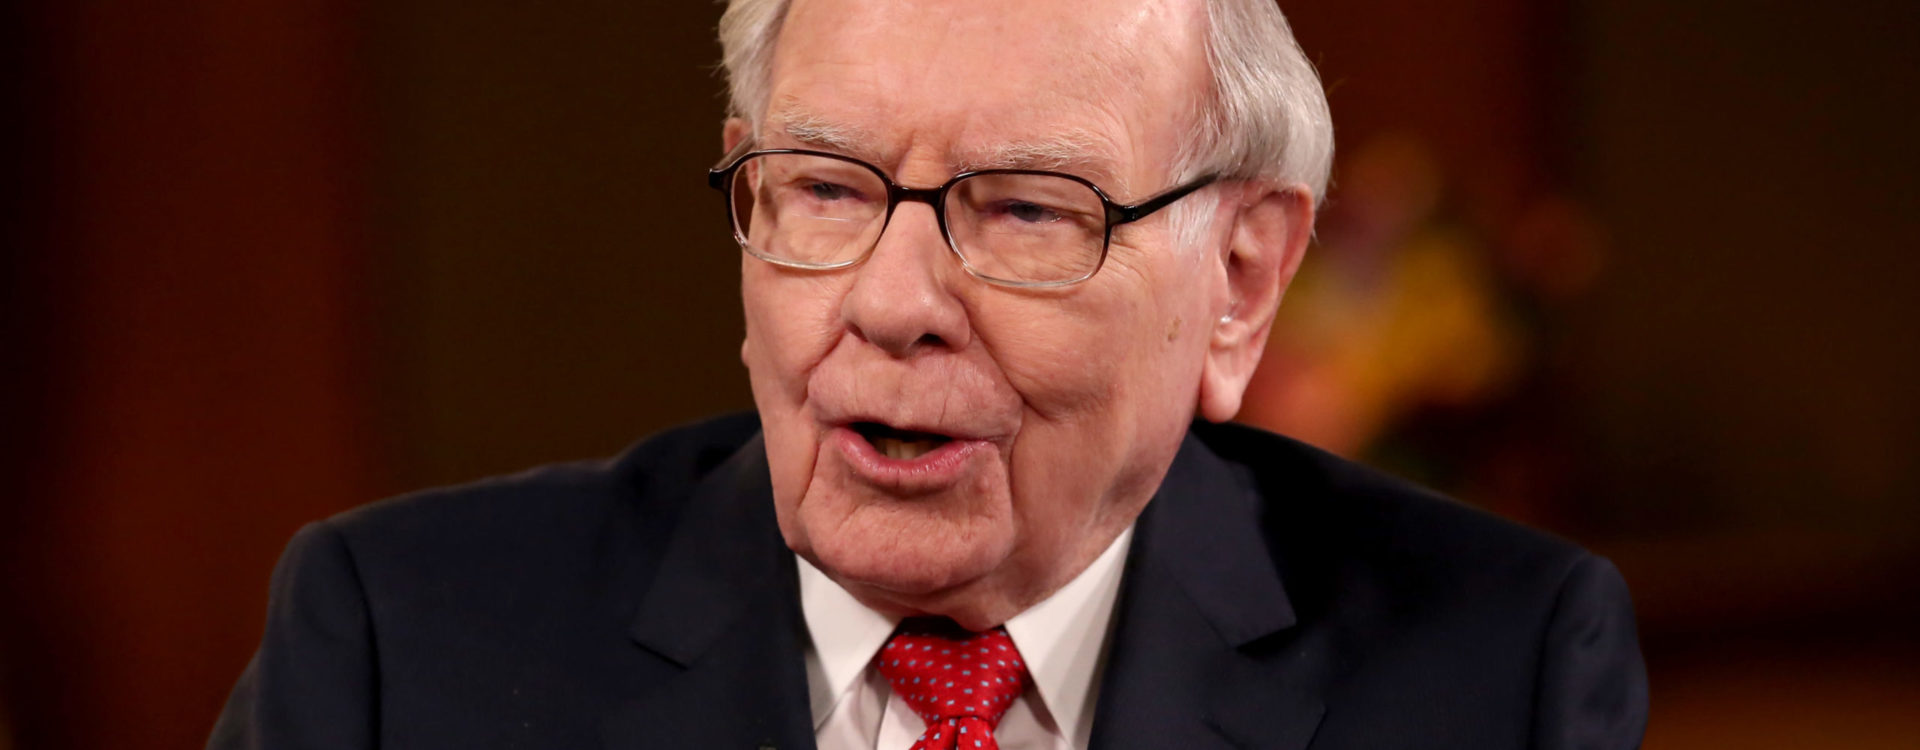 Jim Cramer says Buffett's sale of airline stocks makes him 'very concerned about the near term'